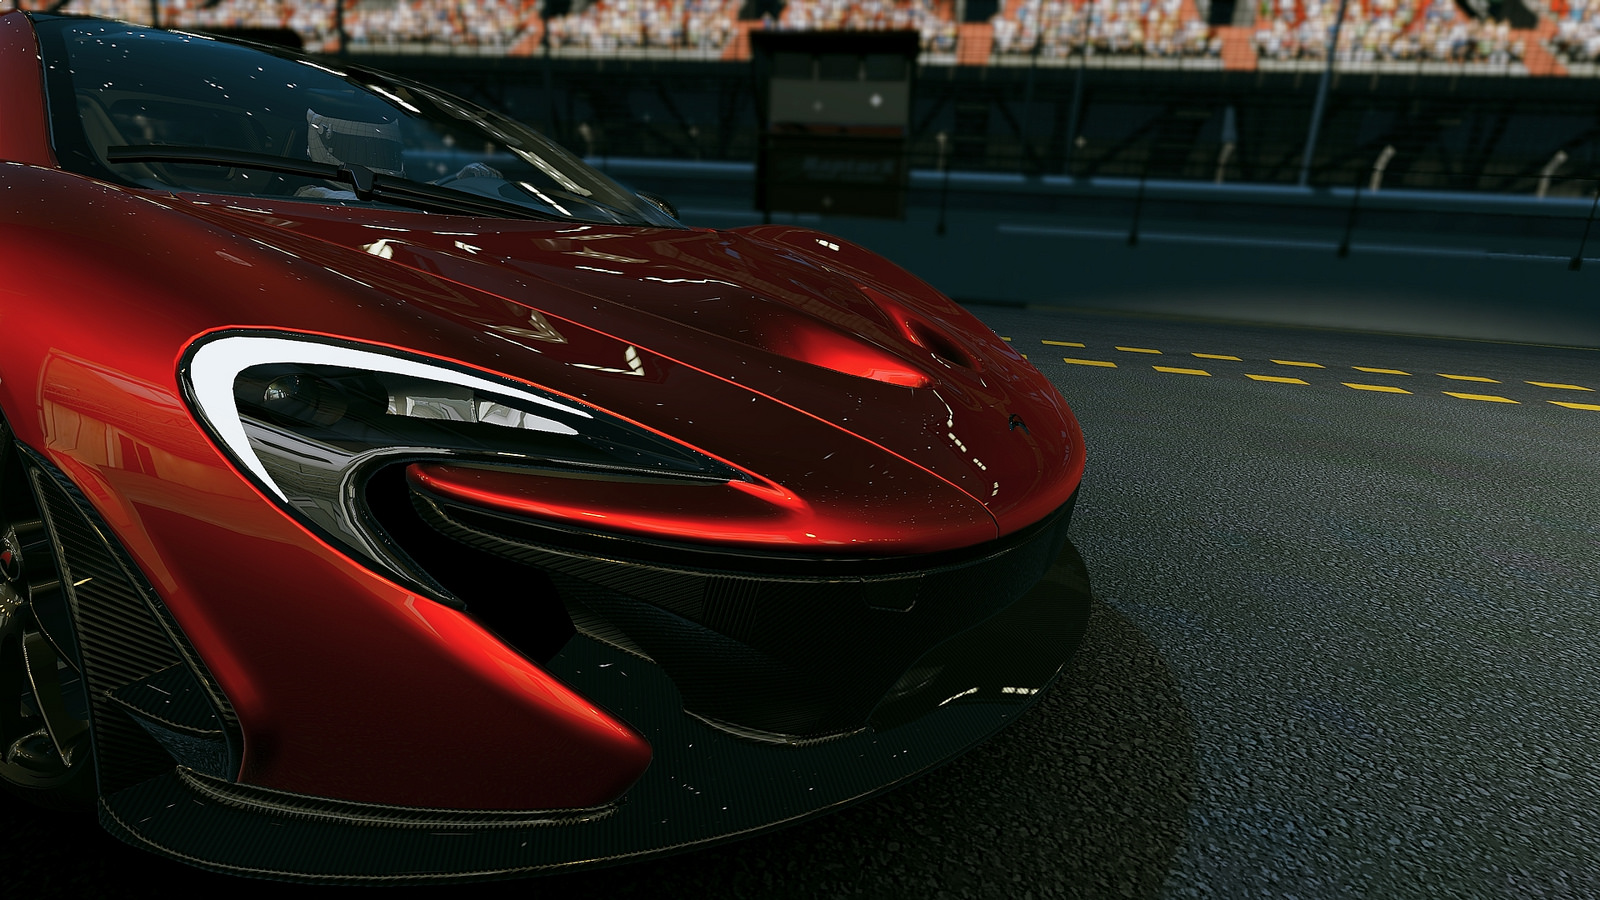 Mclaren p1 project cars photos 3 plan te - Project cars mclaren p1 ...